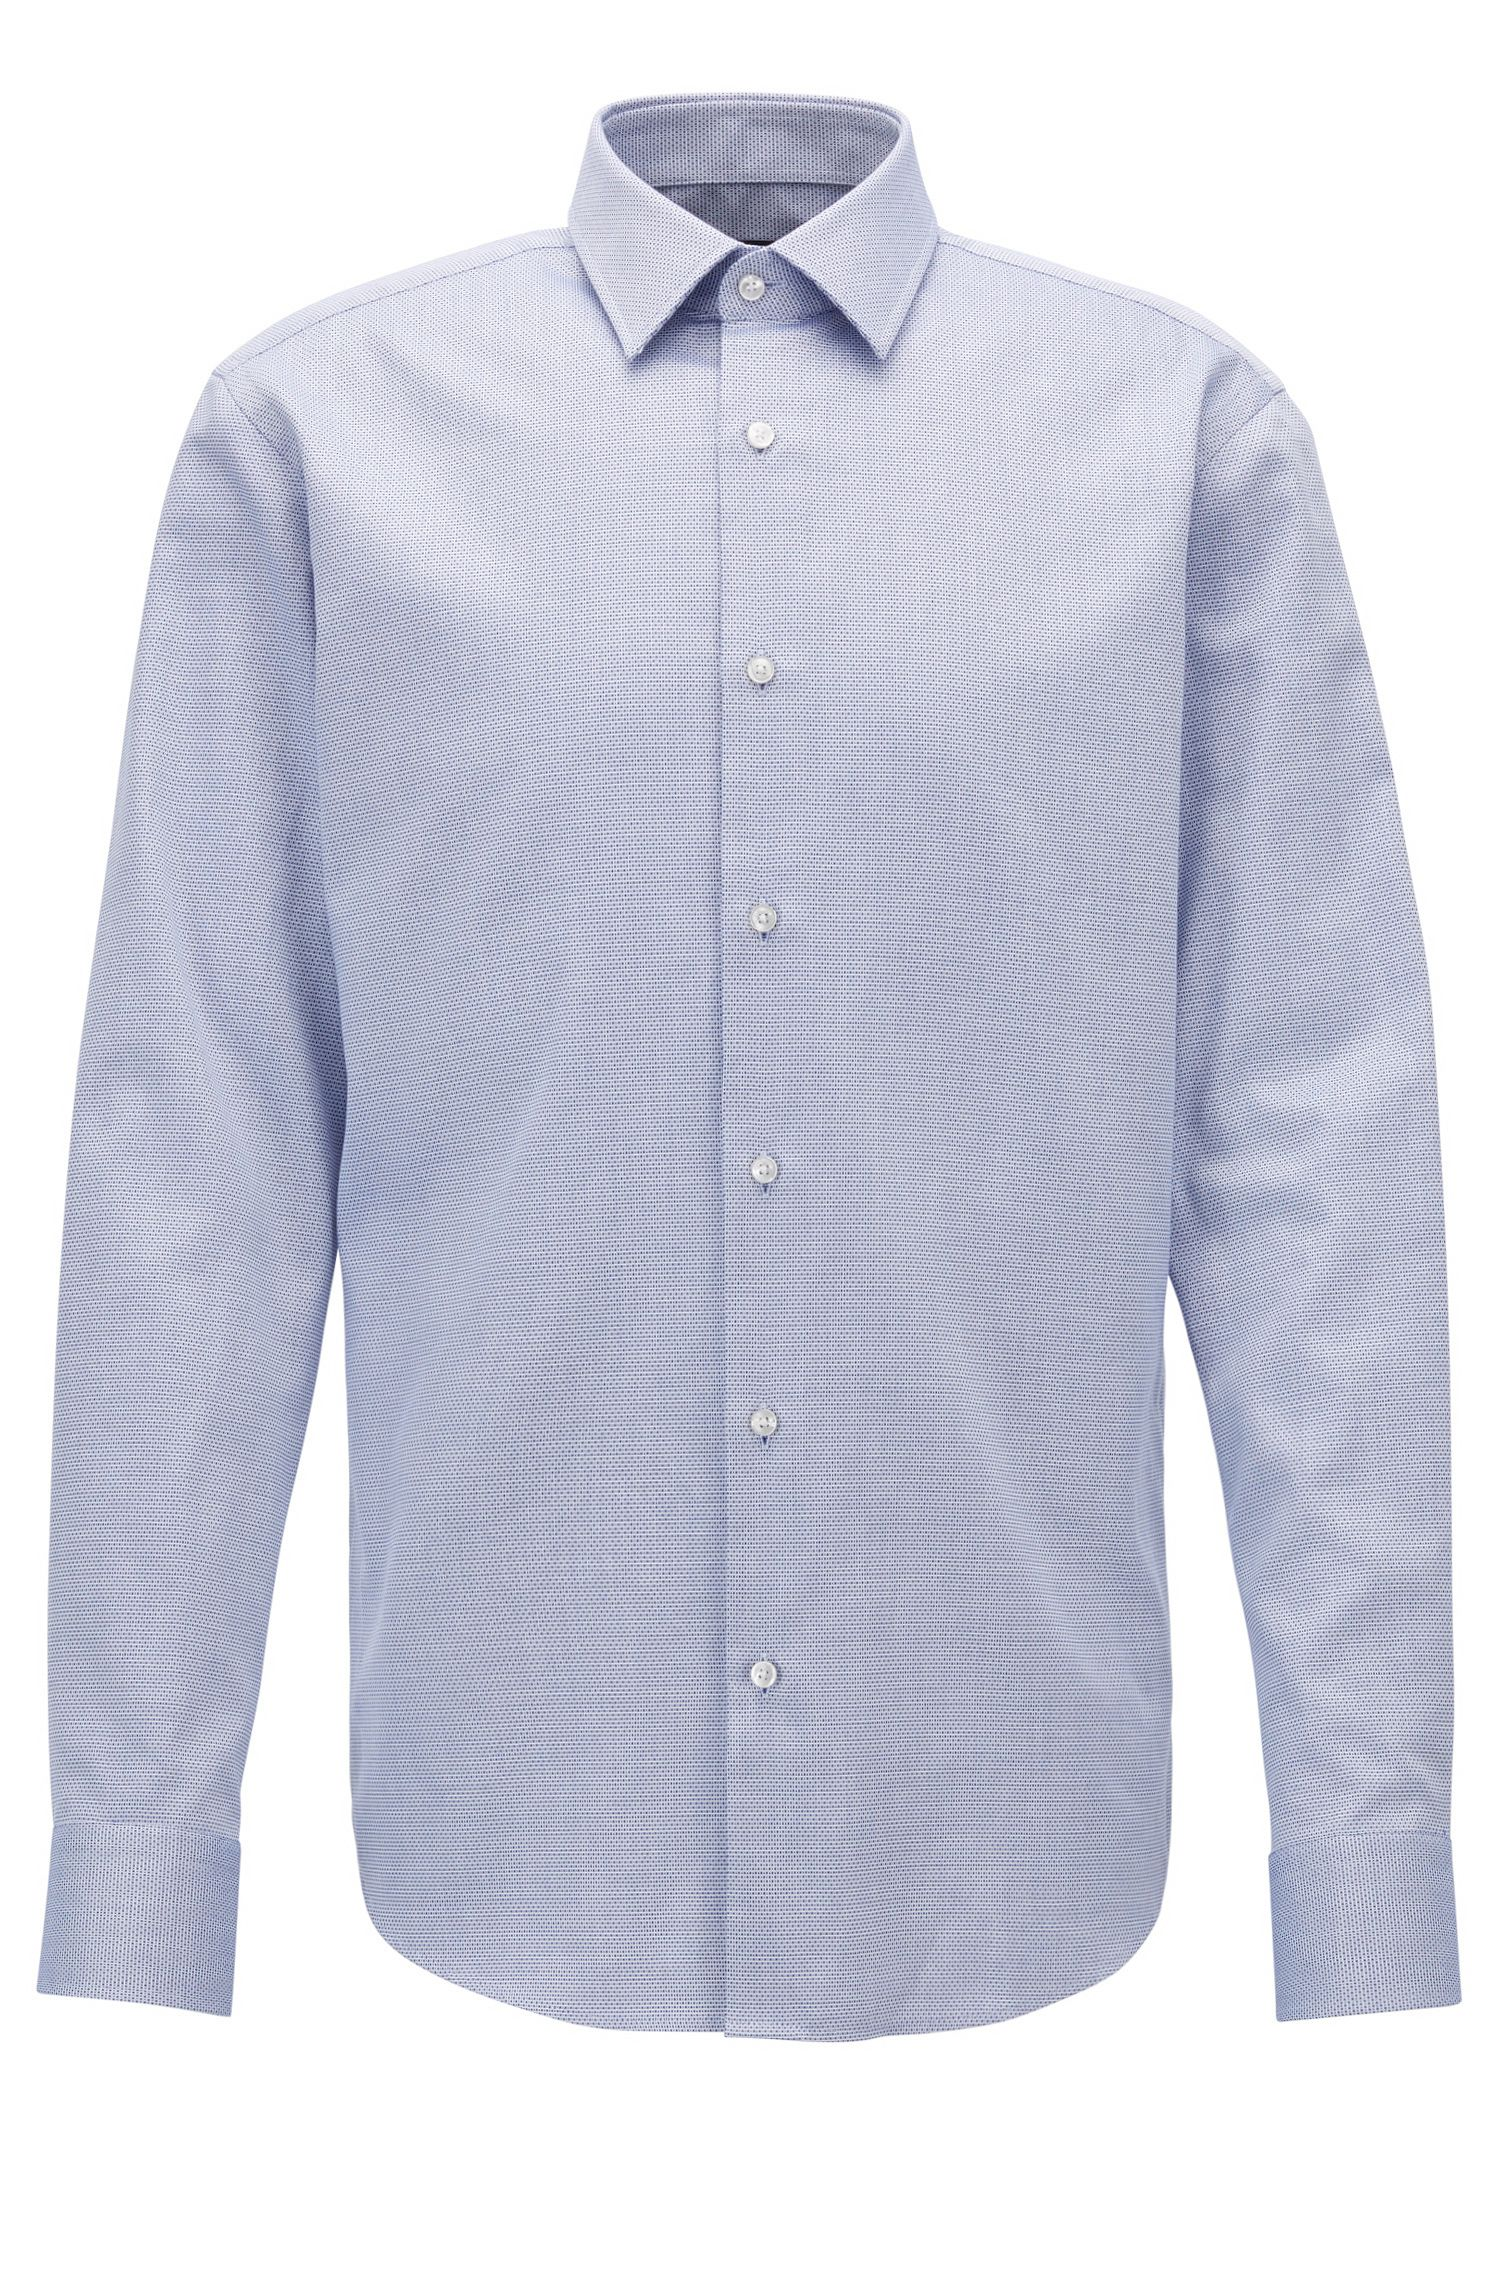 Camisa formal regular fit de algodón con textura